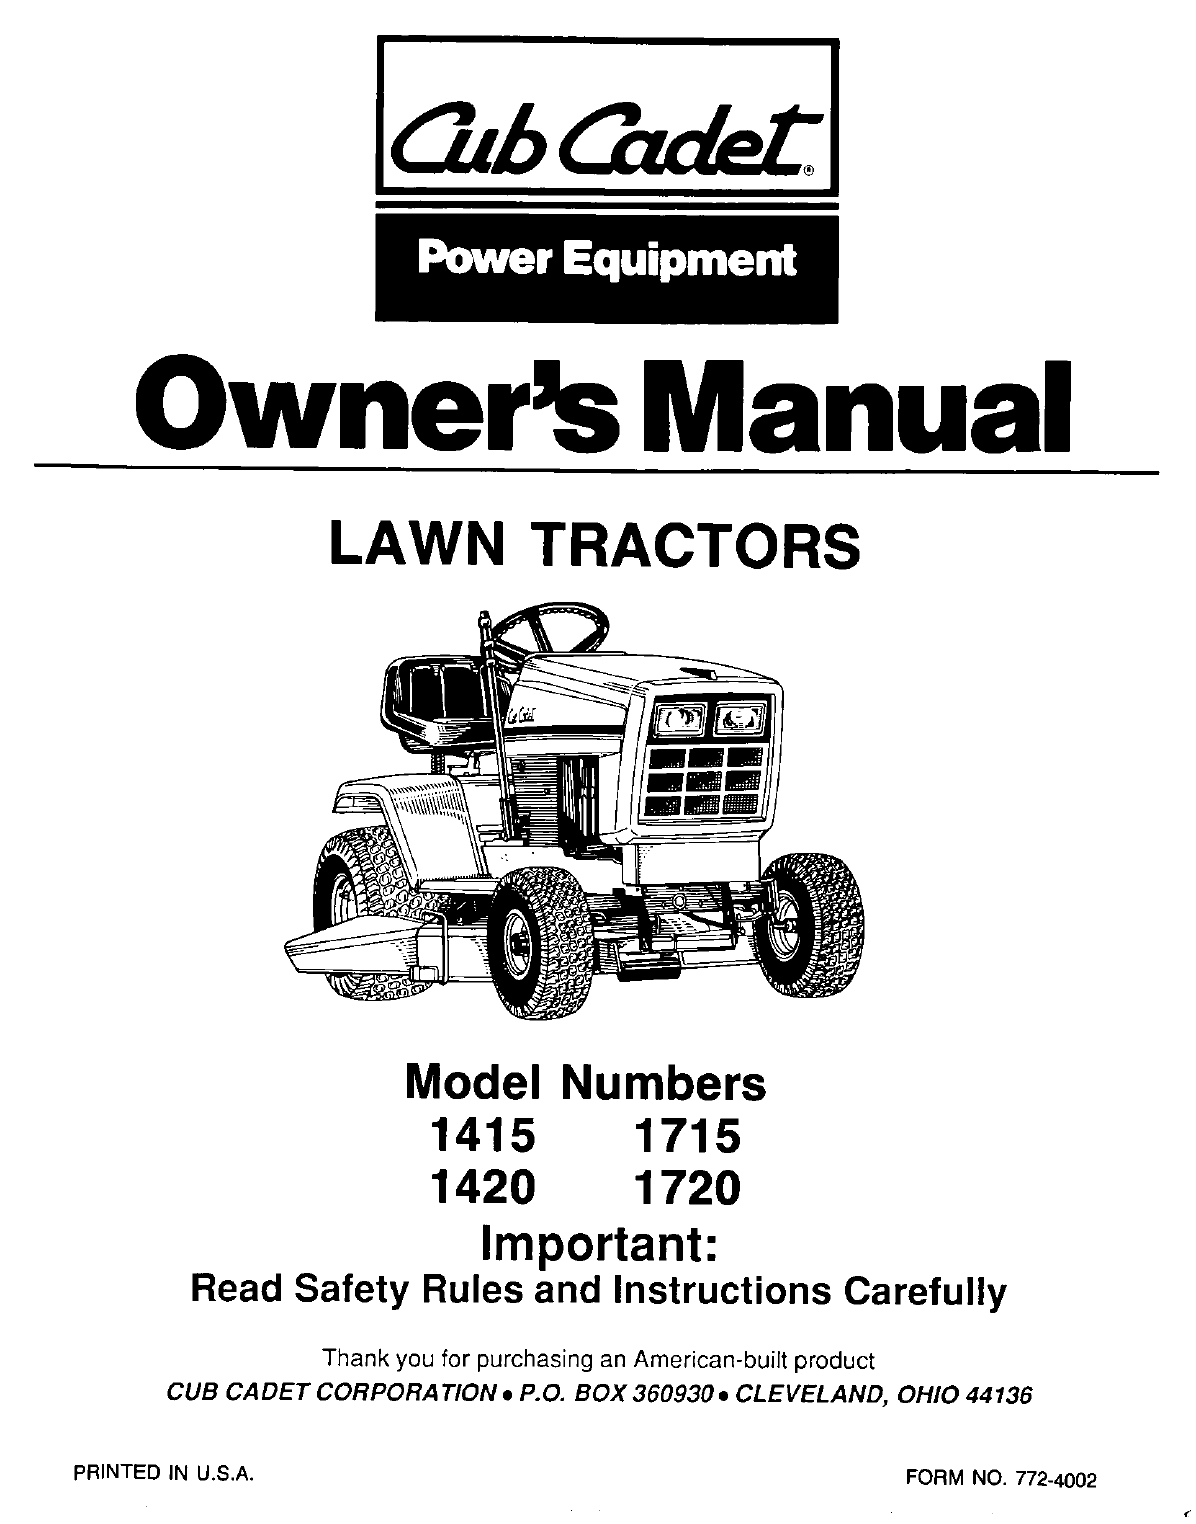 e7c7f801 7ce3 46a7 8348 d03396ad48a9 bg1 cub cadet lawn mower 1720 user guide manualsonline com wiring diagram cub cadet 1440 at mifinder.co